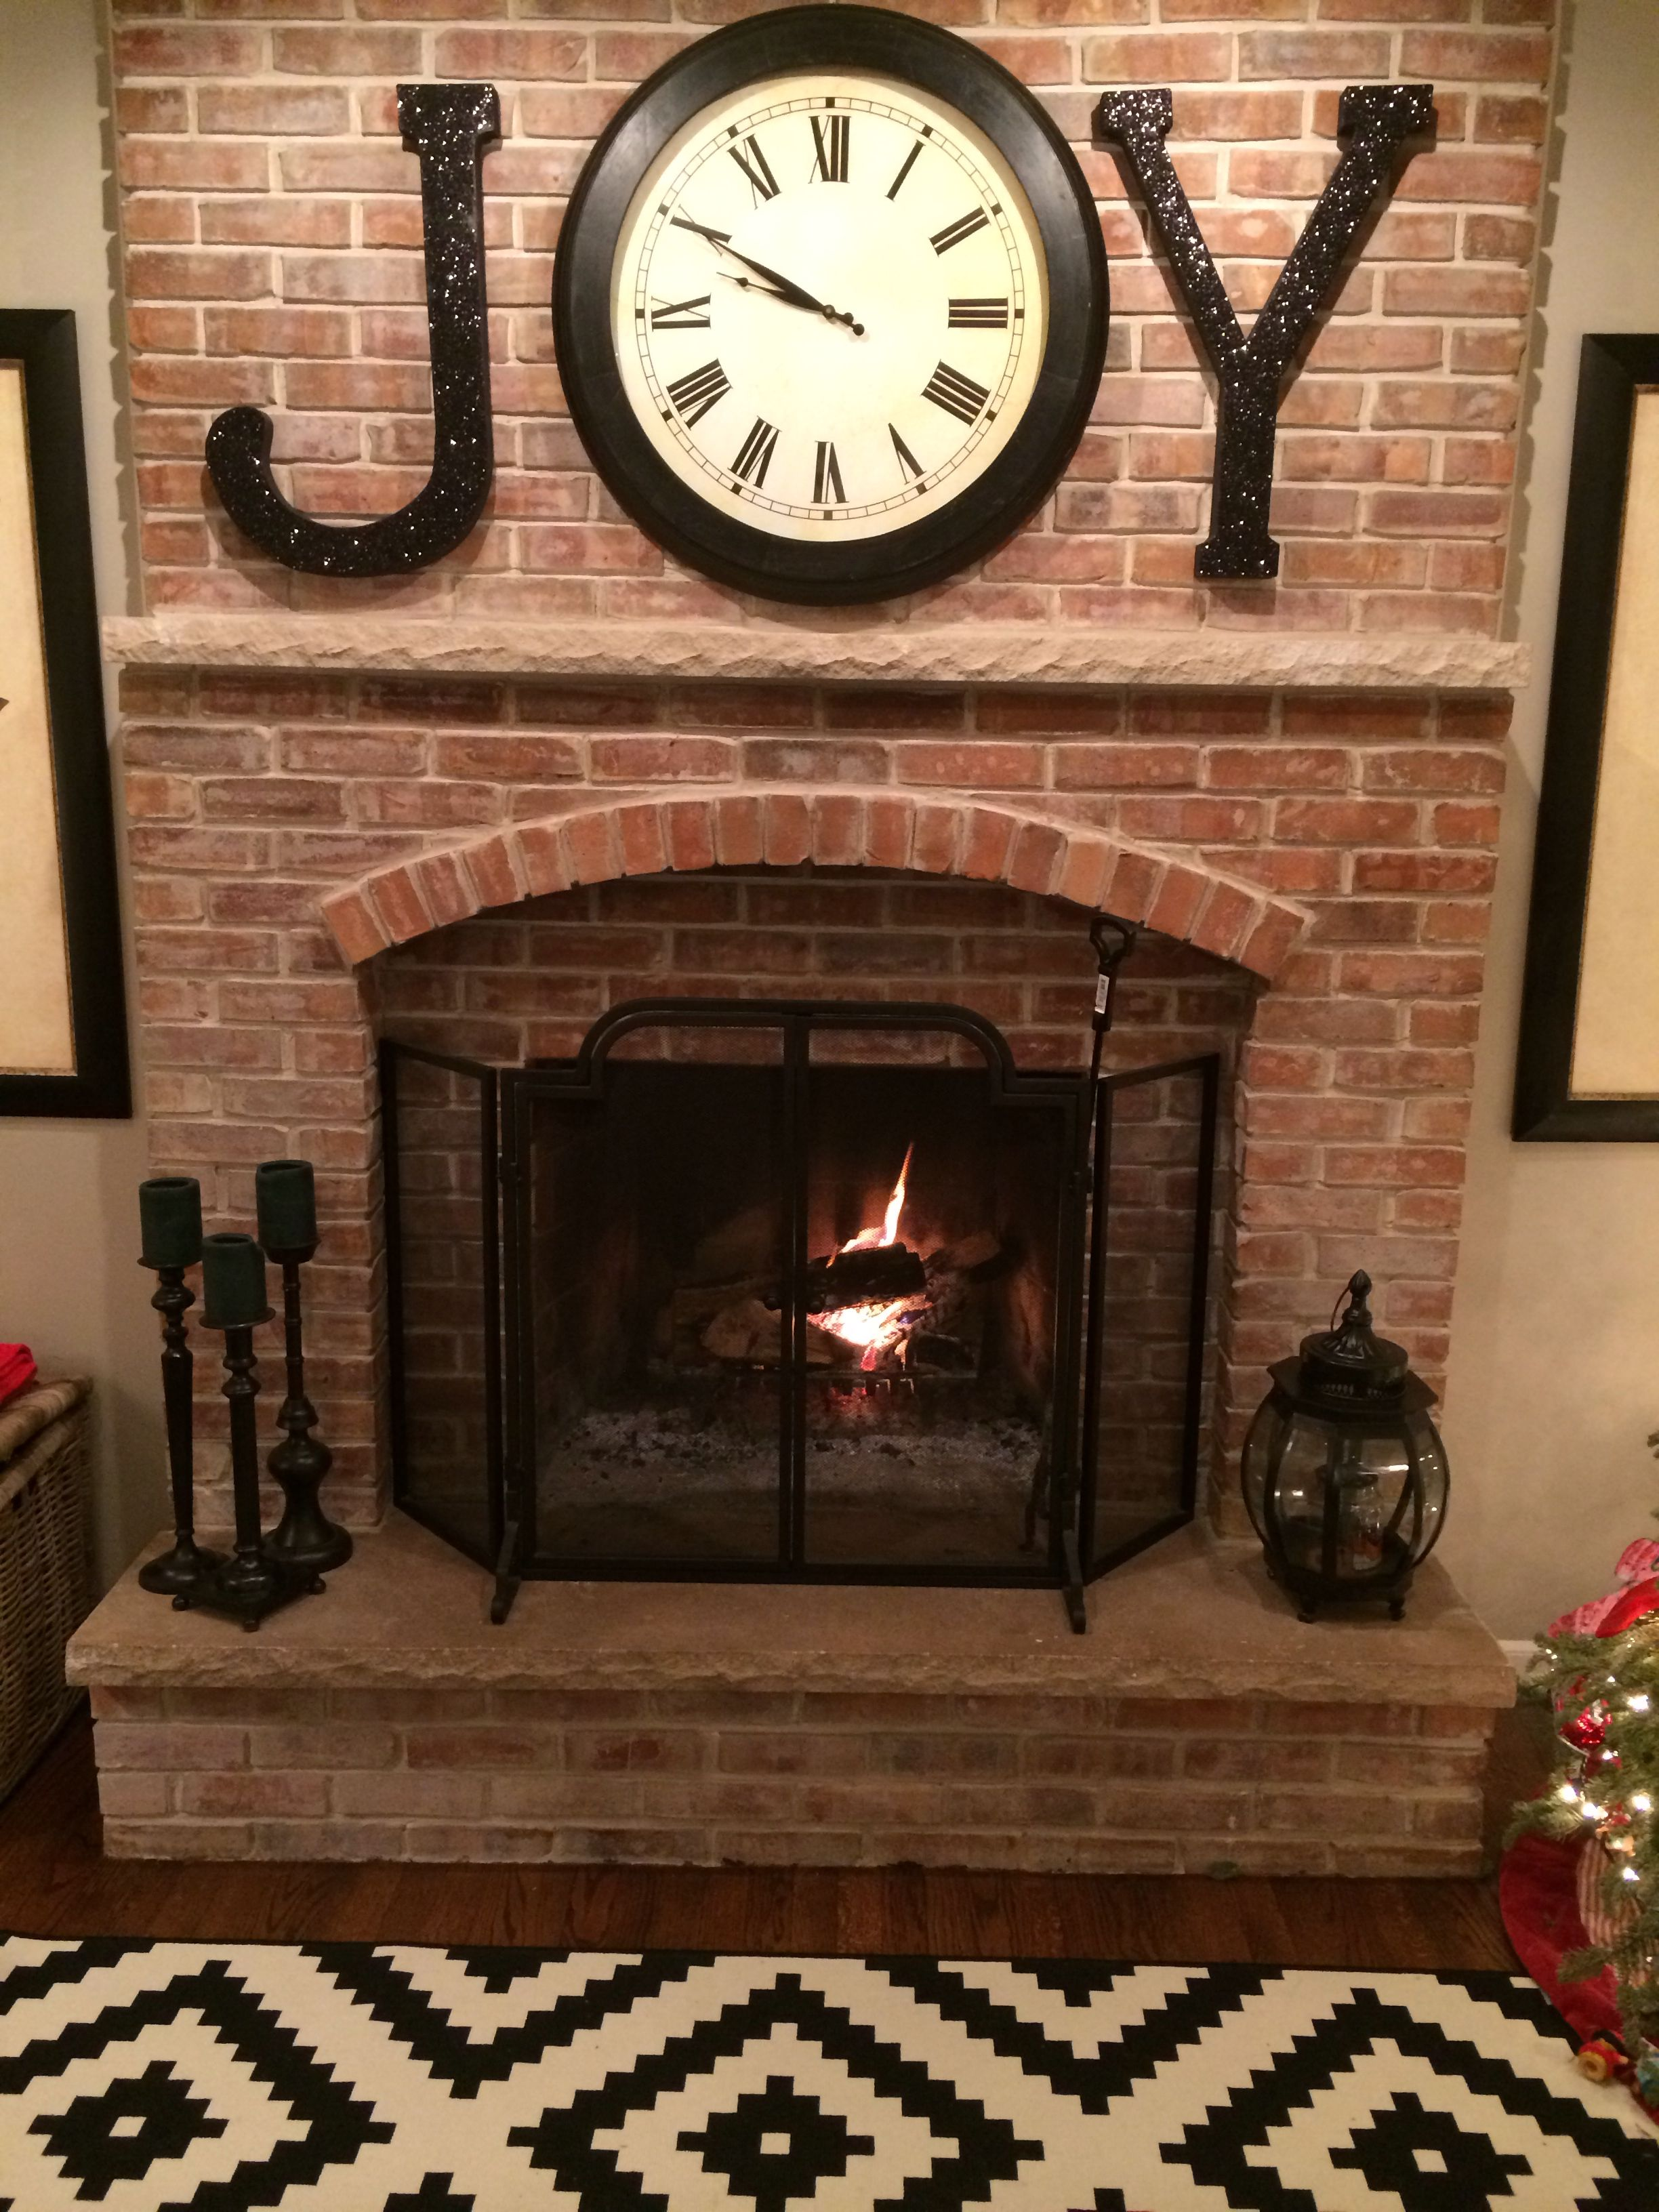 Christmas mantel decor. JOY! Cardboard letters from Joanns spray painted black, brushed with Elmer's glue and a dash of black glitter.